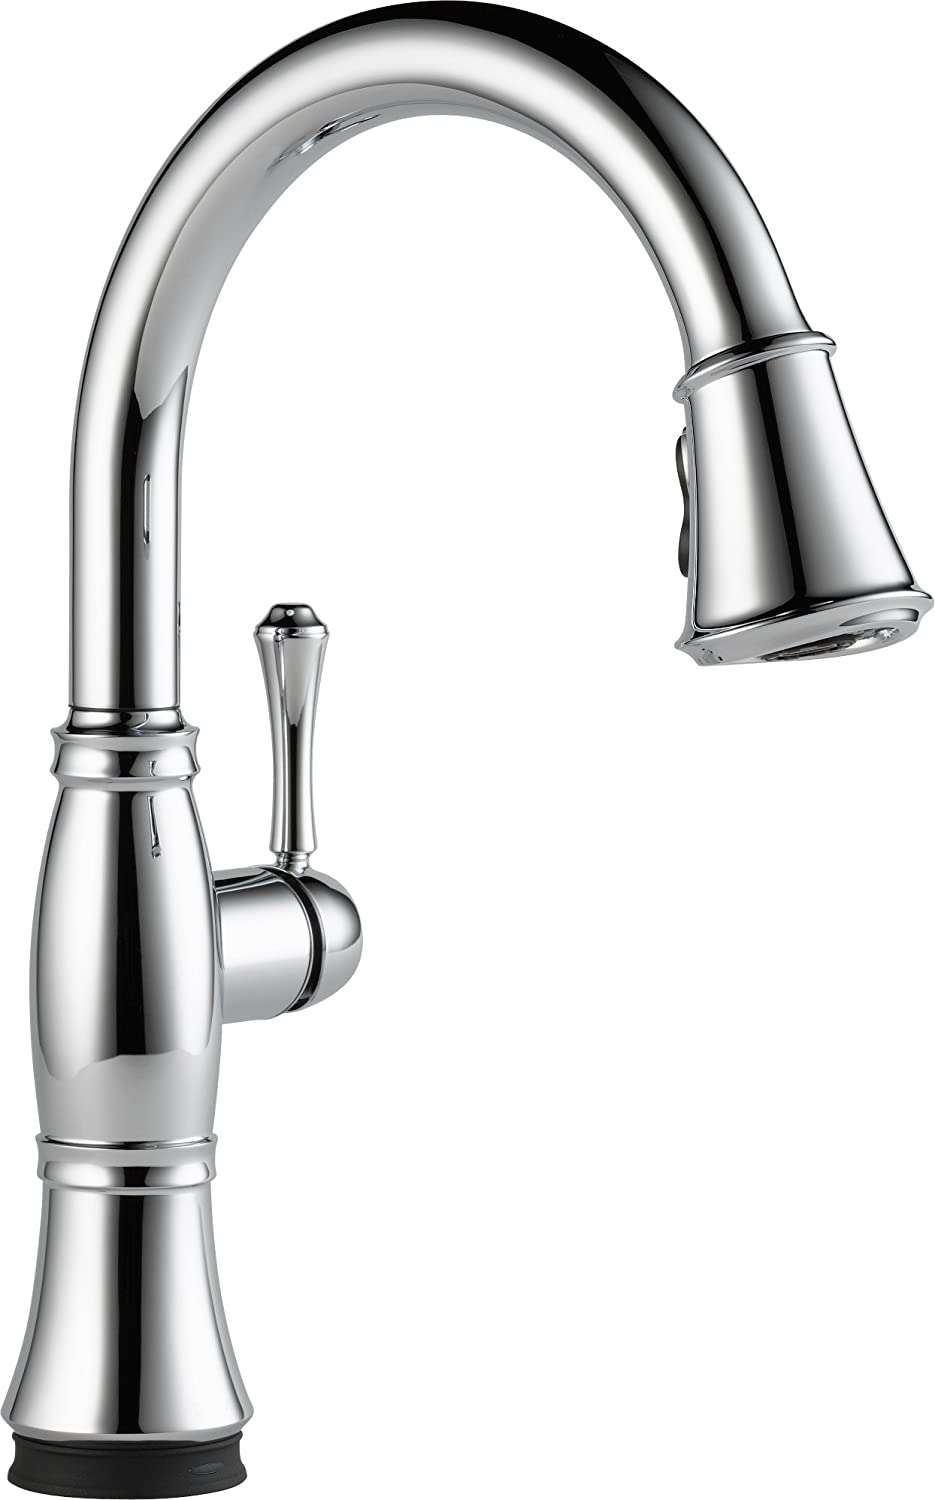 Delta Faucet 9197T DST Cassidy Single Handle Pull Down Kitchen Faucet With  Touch2O Technology And Magnetic Docking, Chrome   Touch On Kitchen Sink  Faucets ...